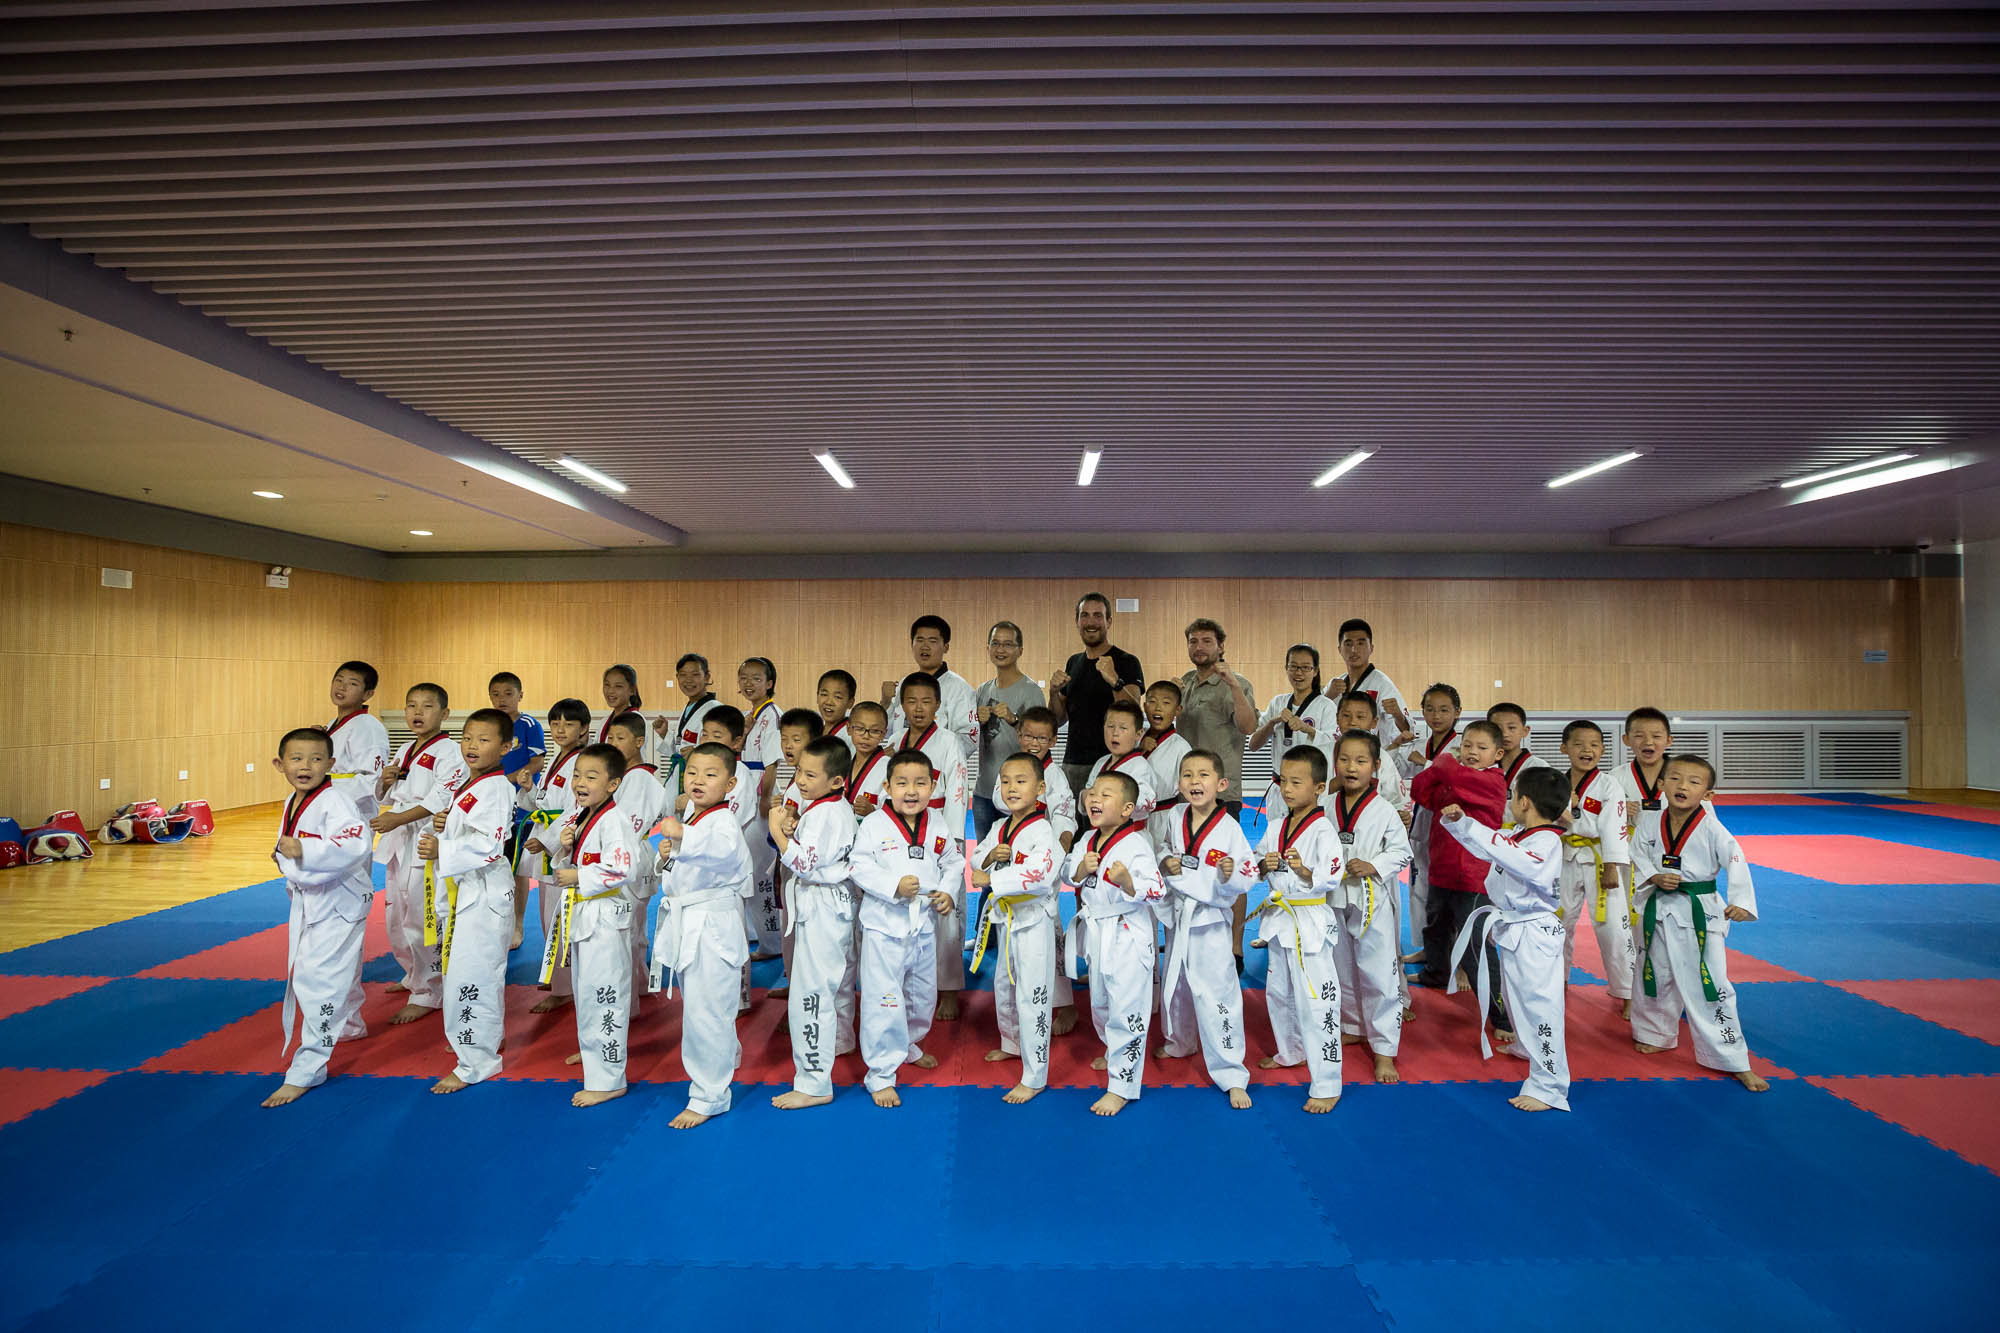 Lei Sheng's Taekwondo club bid us welcome